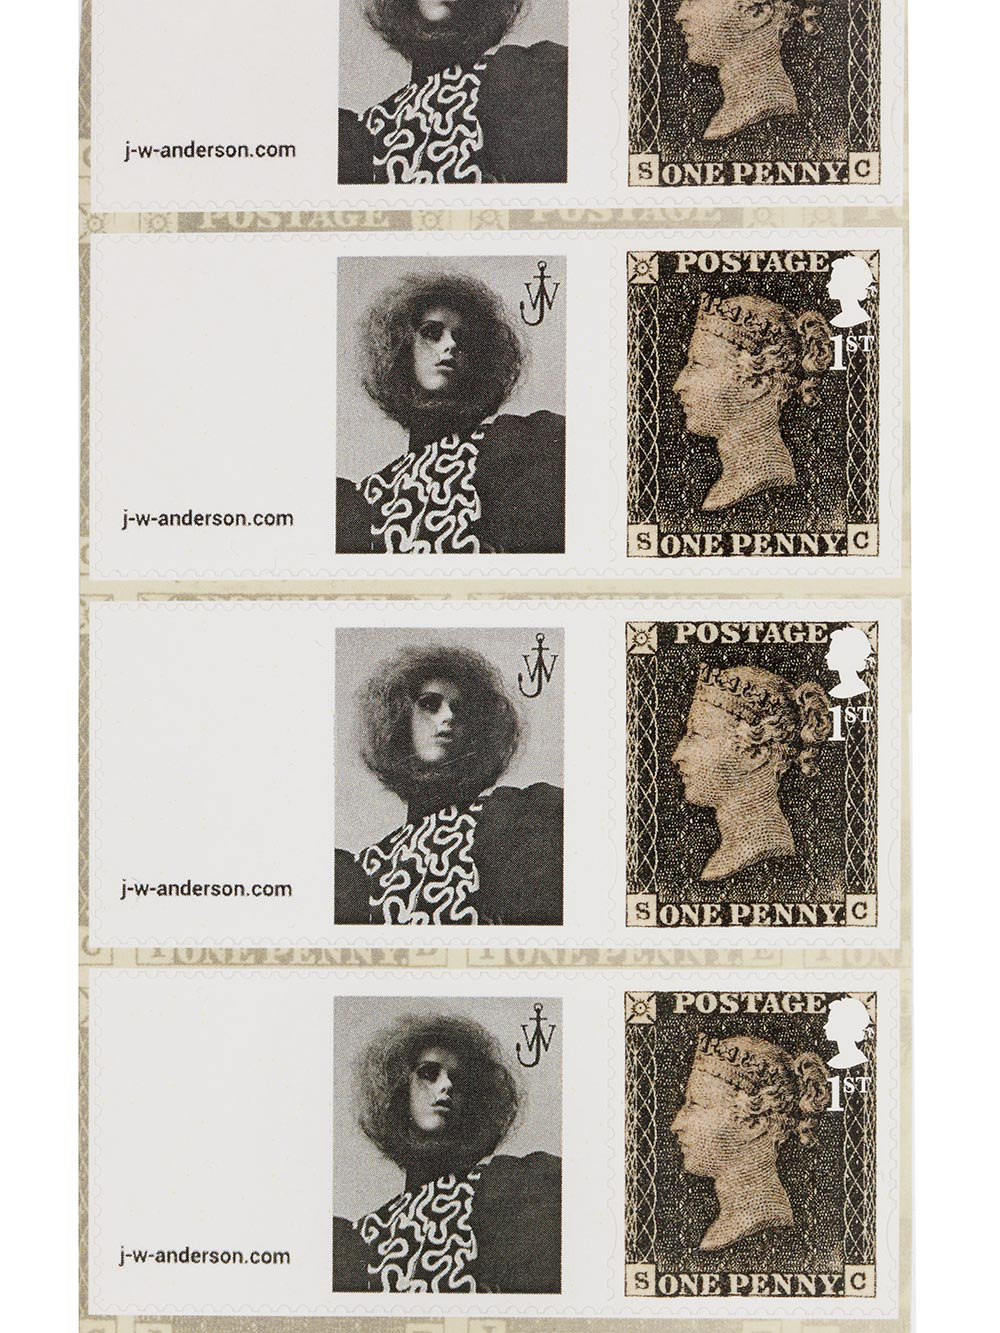 J.W.Anderson_Stamp_01[hIEW]